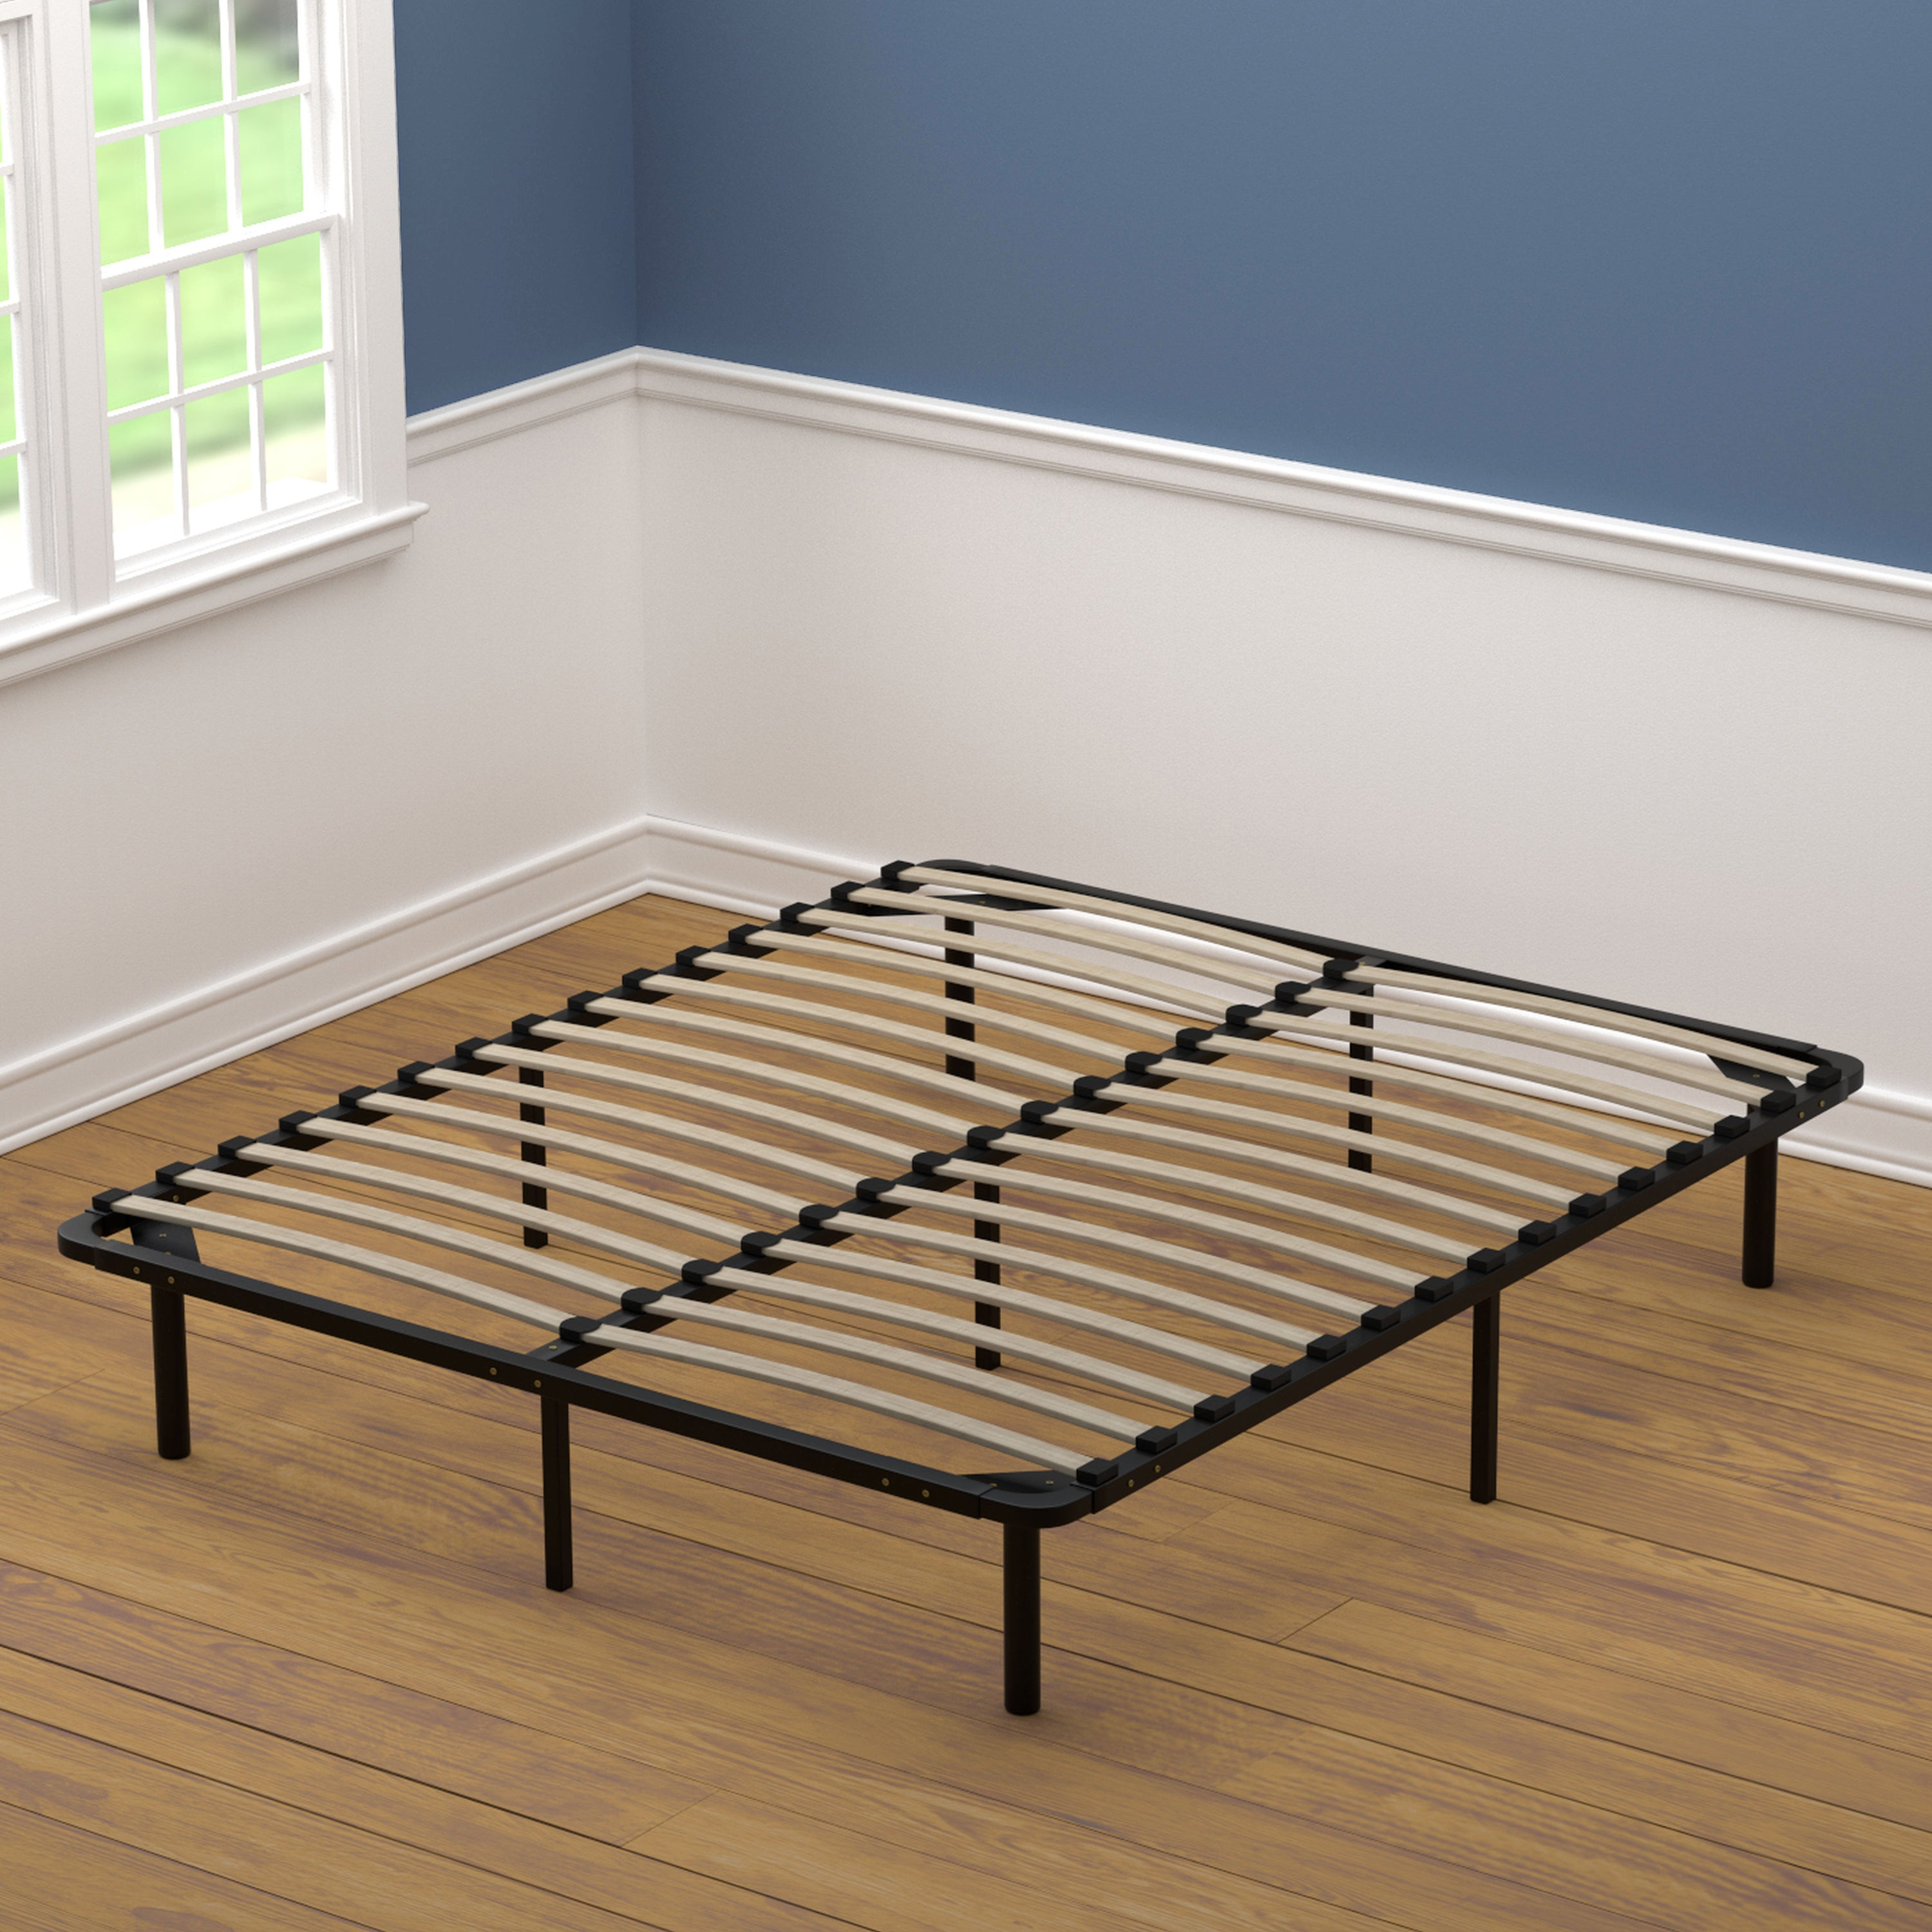 Shop Handy Living Queen Size Wood Slat Bed Frame On Sale Free